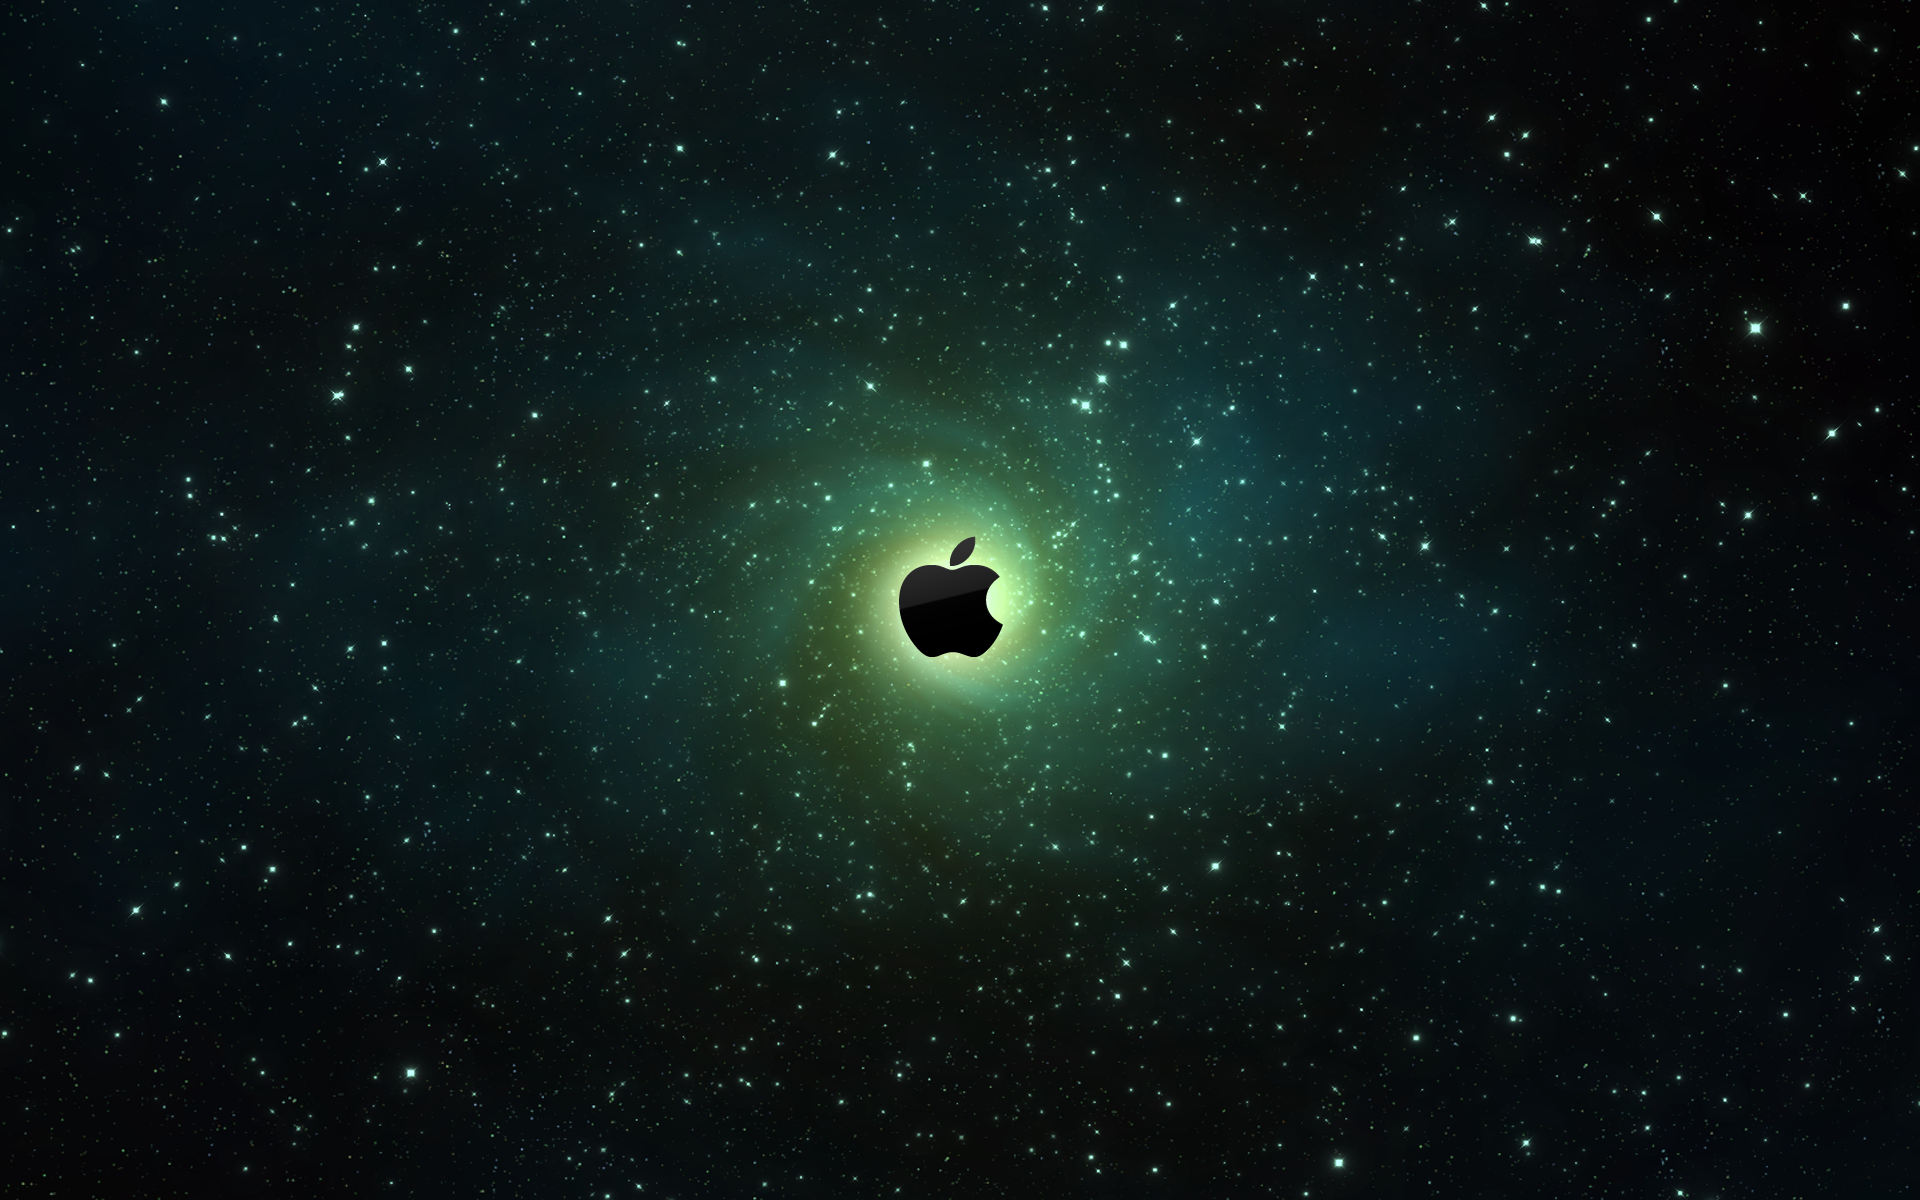 Apple Wallpapers, HQ Definition Pictures